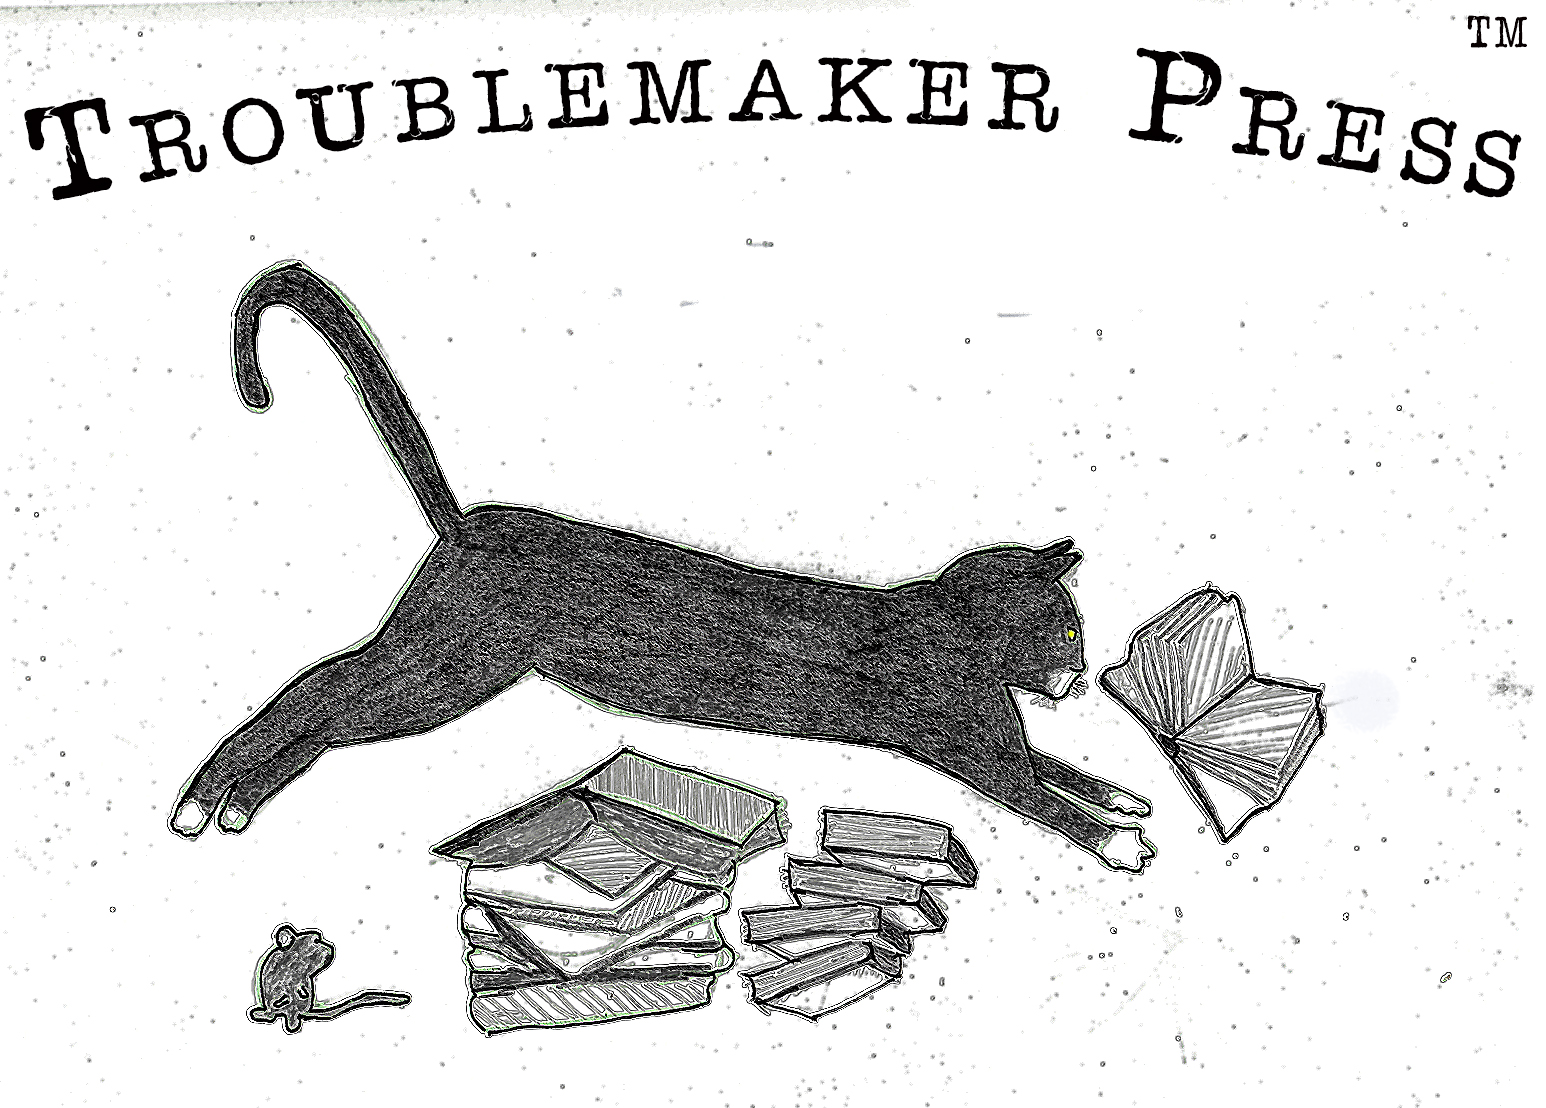 Prototype 1 Troublemaker